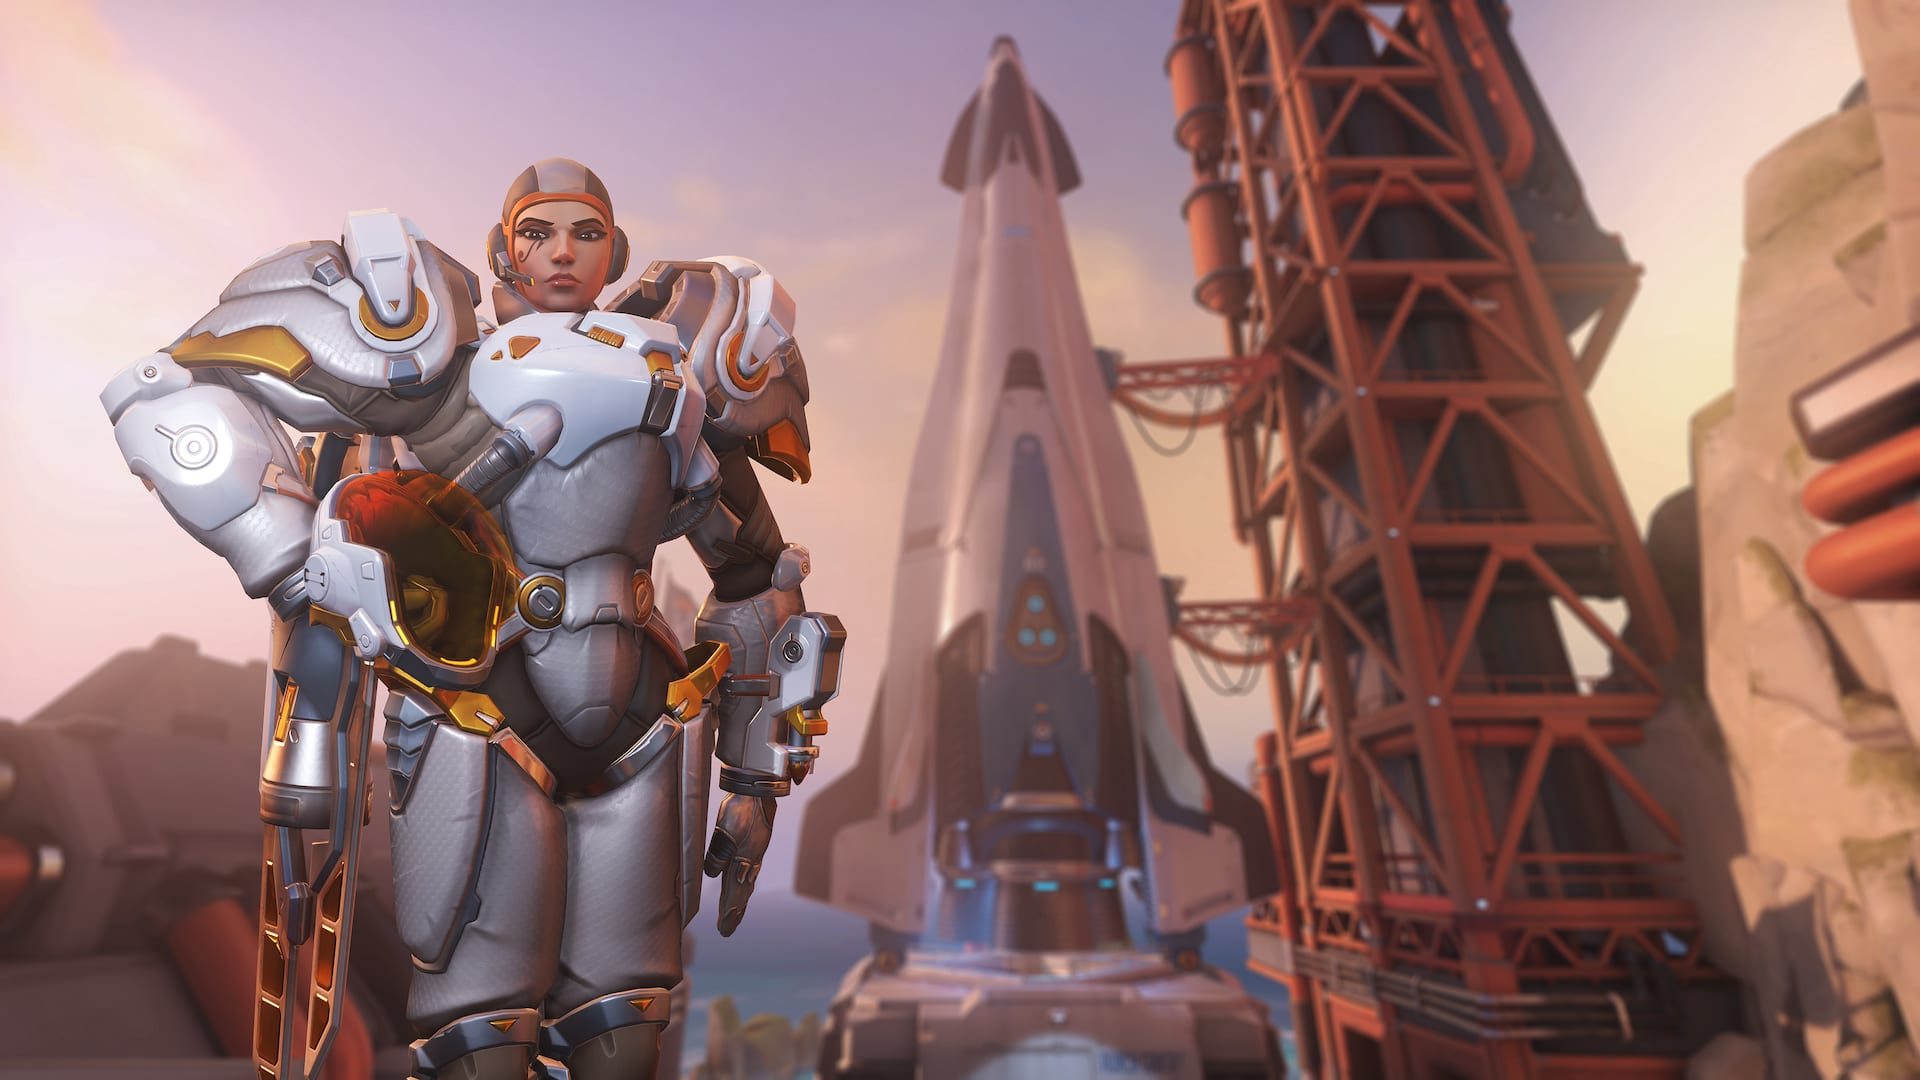 Orbital Pharah is now available on live servers as part of Overwatch Anniversary 2019.